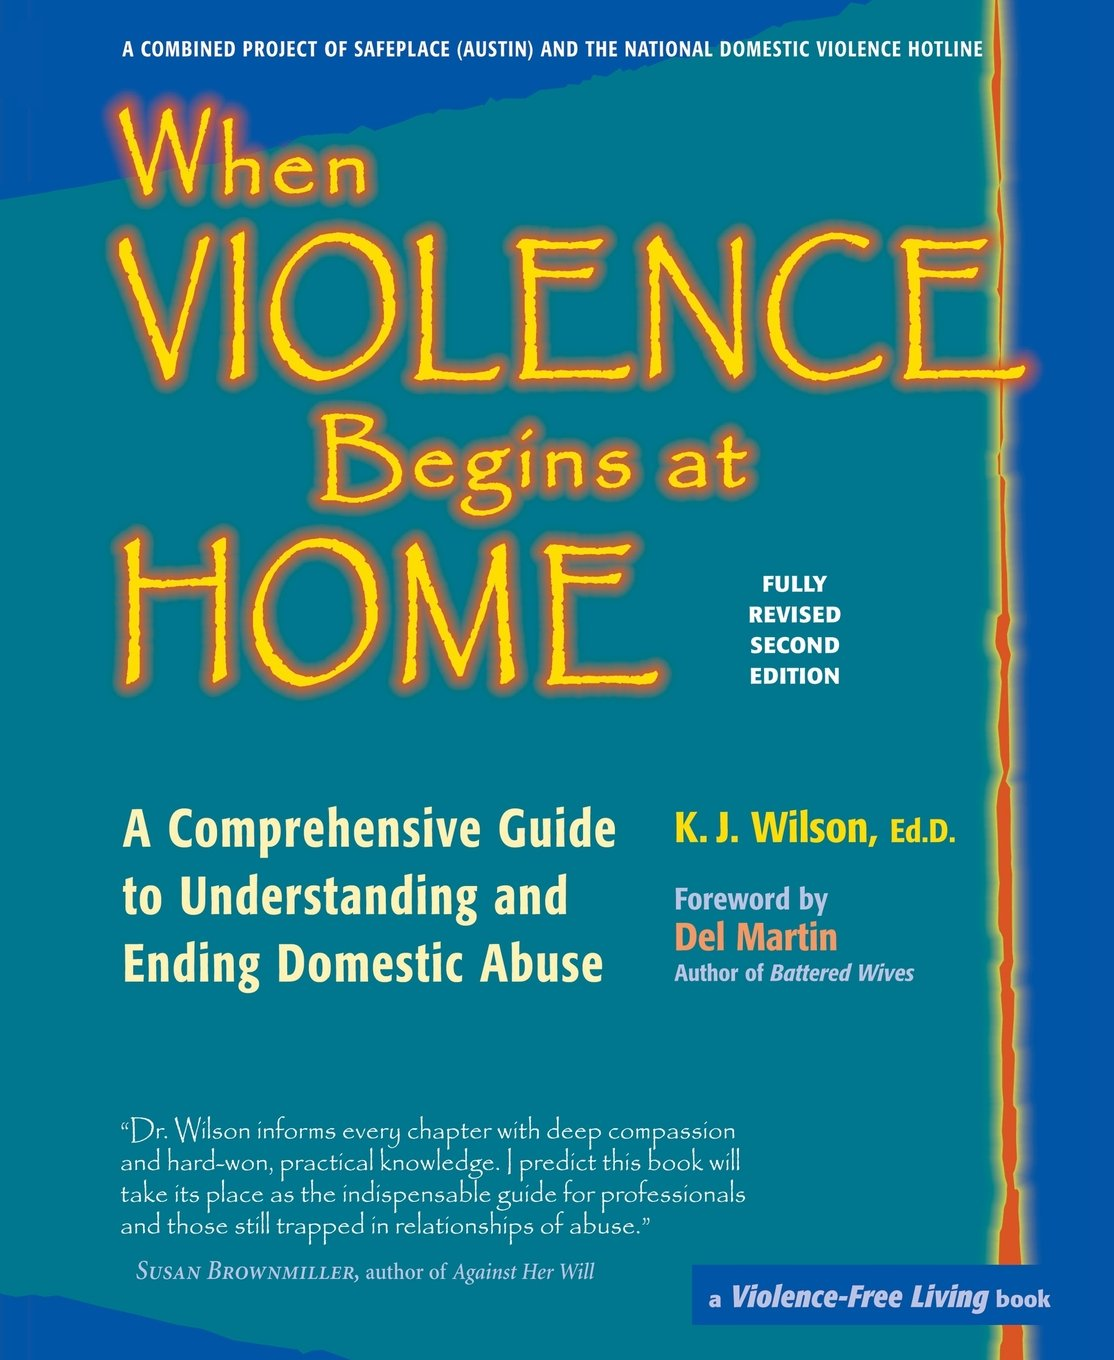 When violence begins at home a comprehensive guide to understanding when violence begins at home a comprehensive guide to understanding and ending domestic abuse k j wilson edd 9780897934558 amazon books fandeluxe Image collections